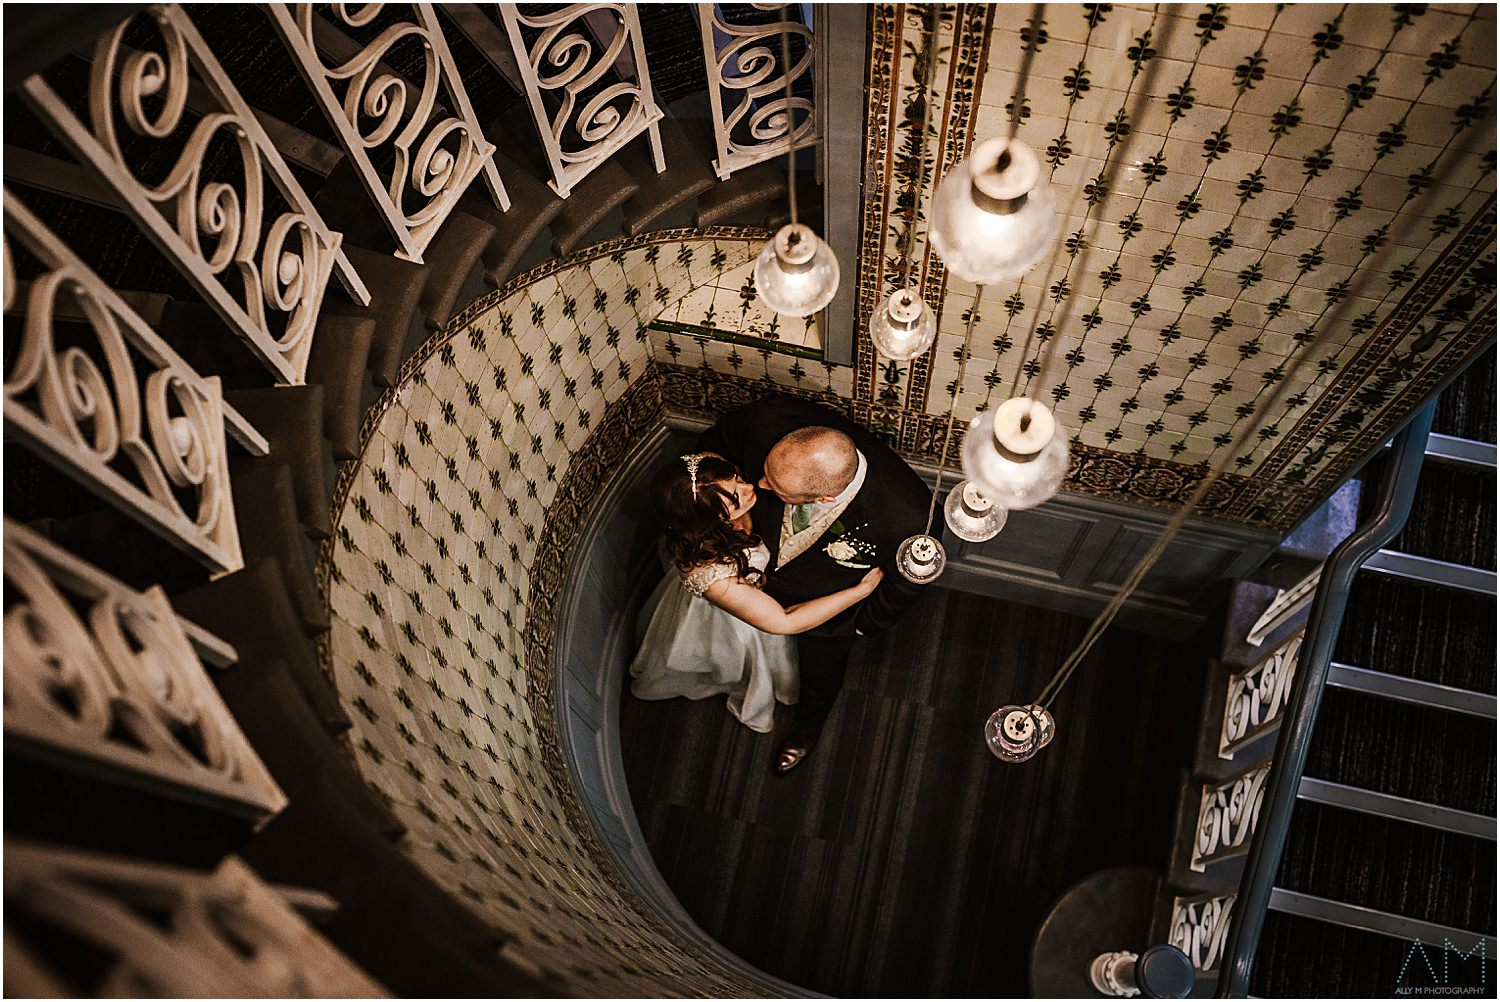 Staircase in Midland hotel